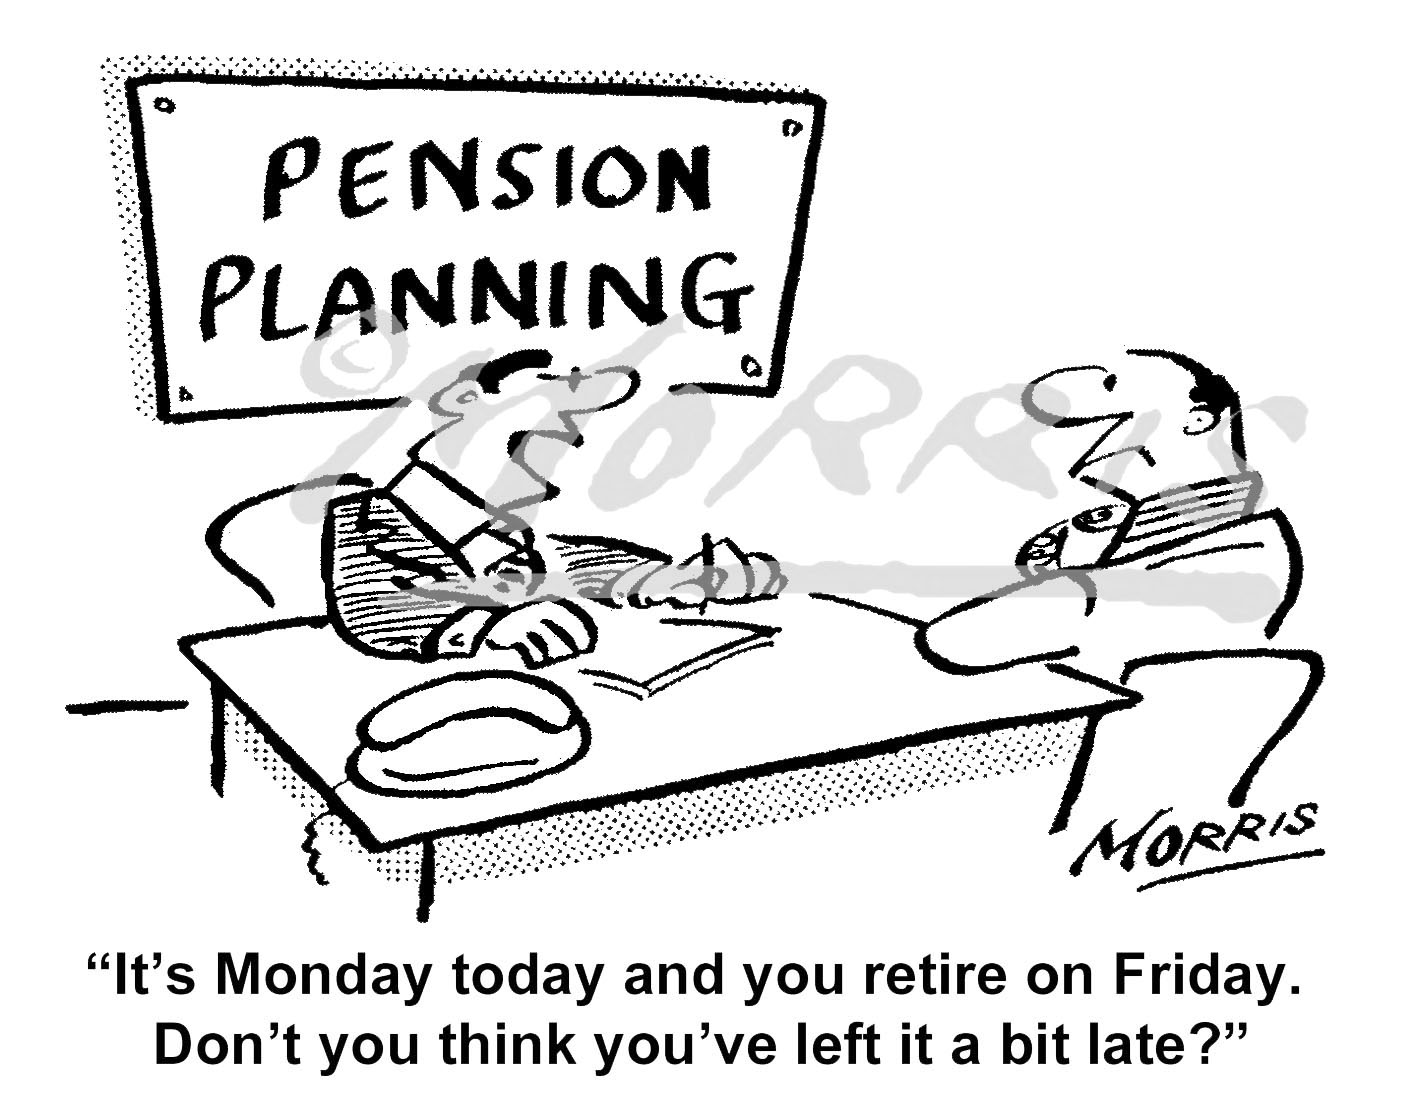 Pension planning retirement cartoon – Ref: 7413bw